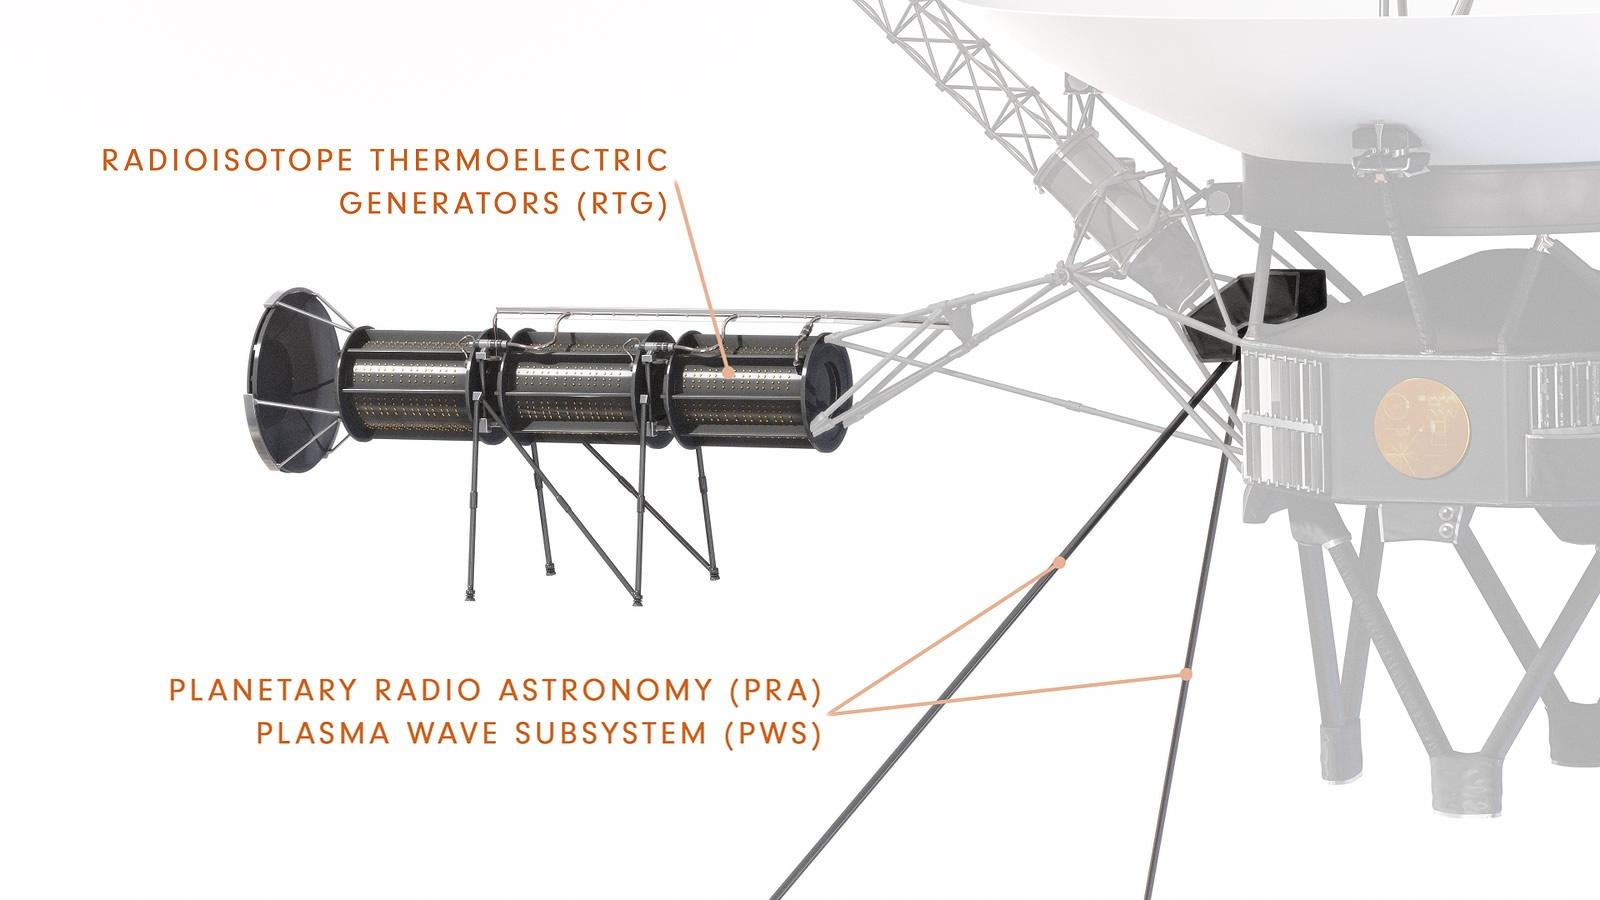 Diagram showing Voyager's smaller boom that holds the radioactive power source away from the ship's electronics and the other scientific instruments